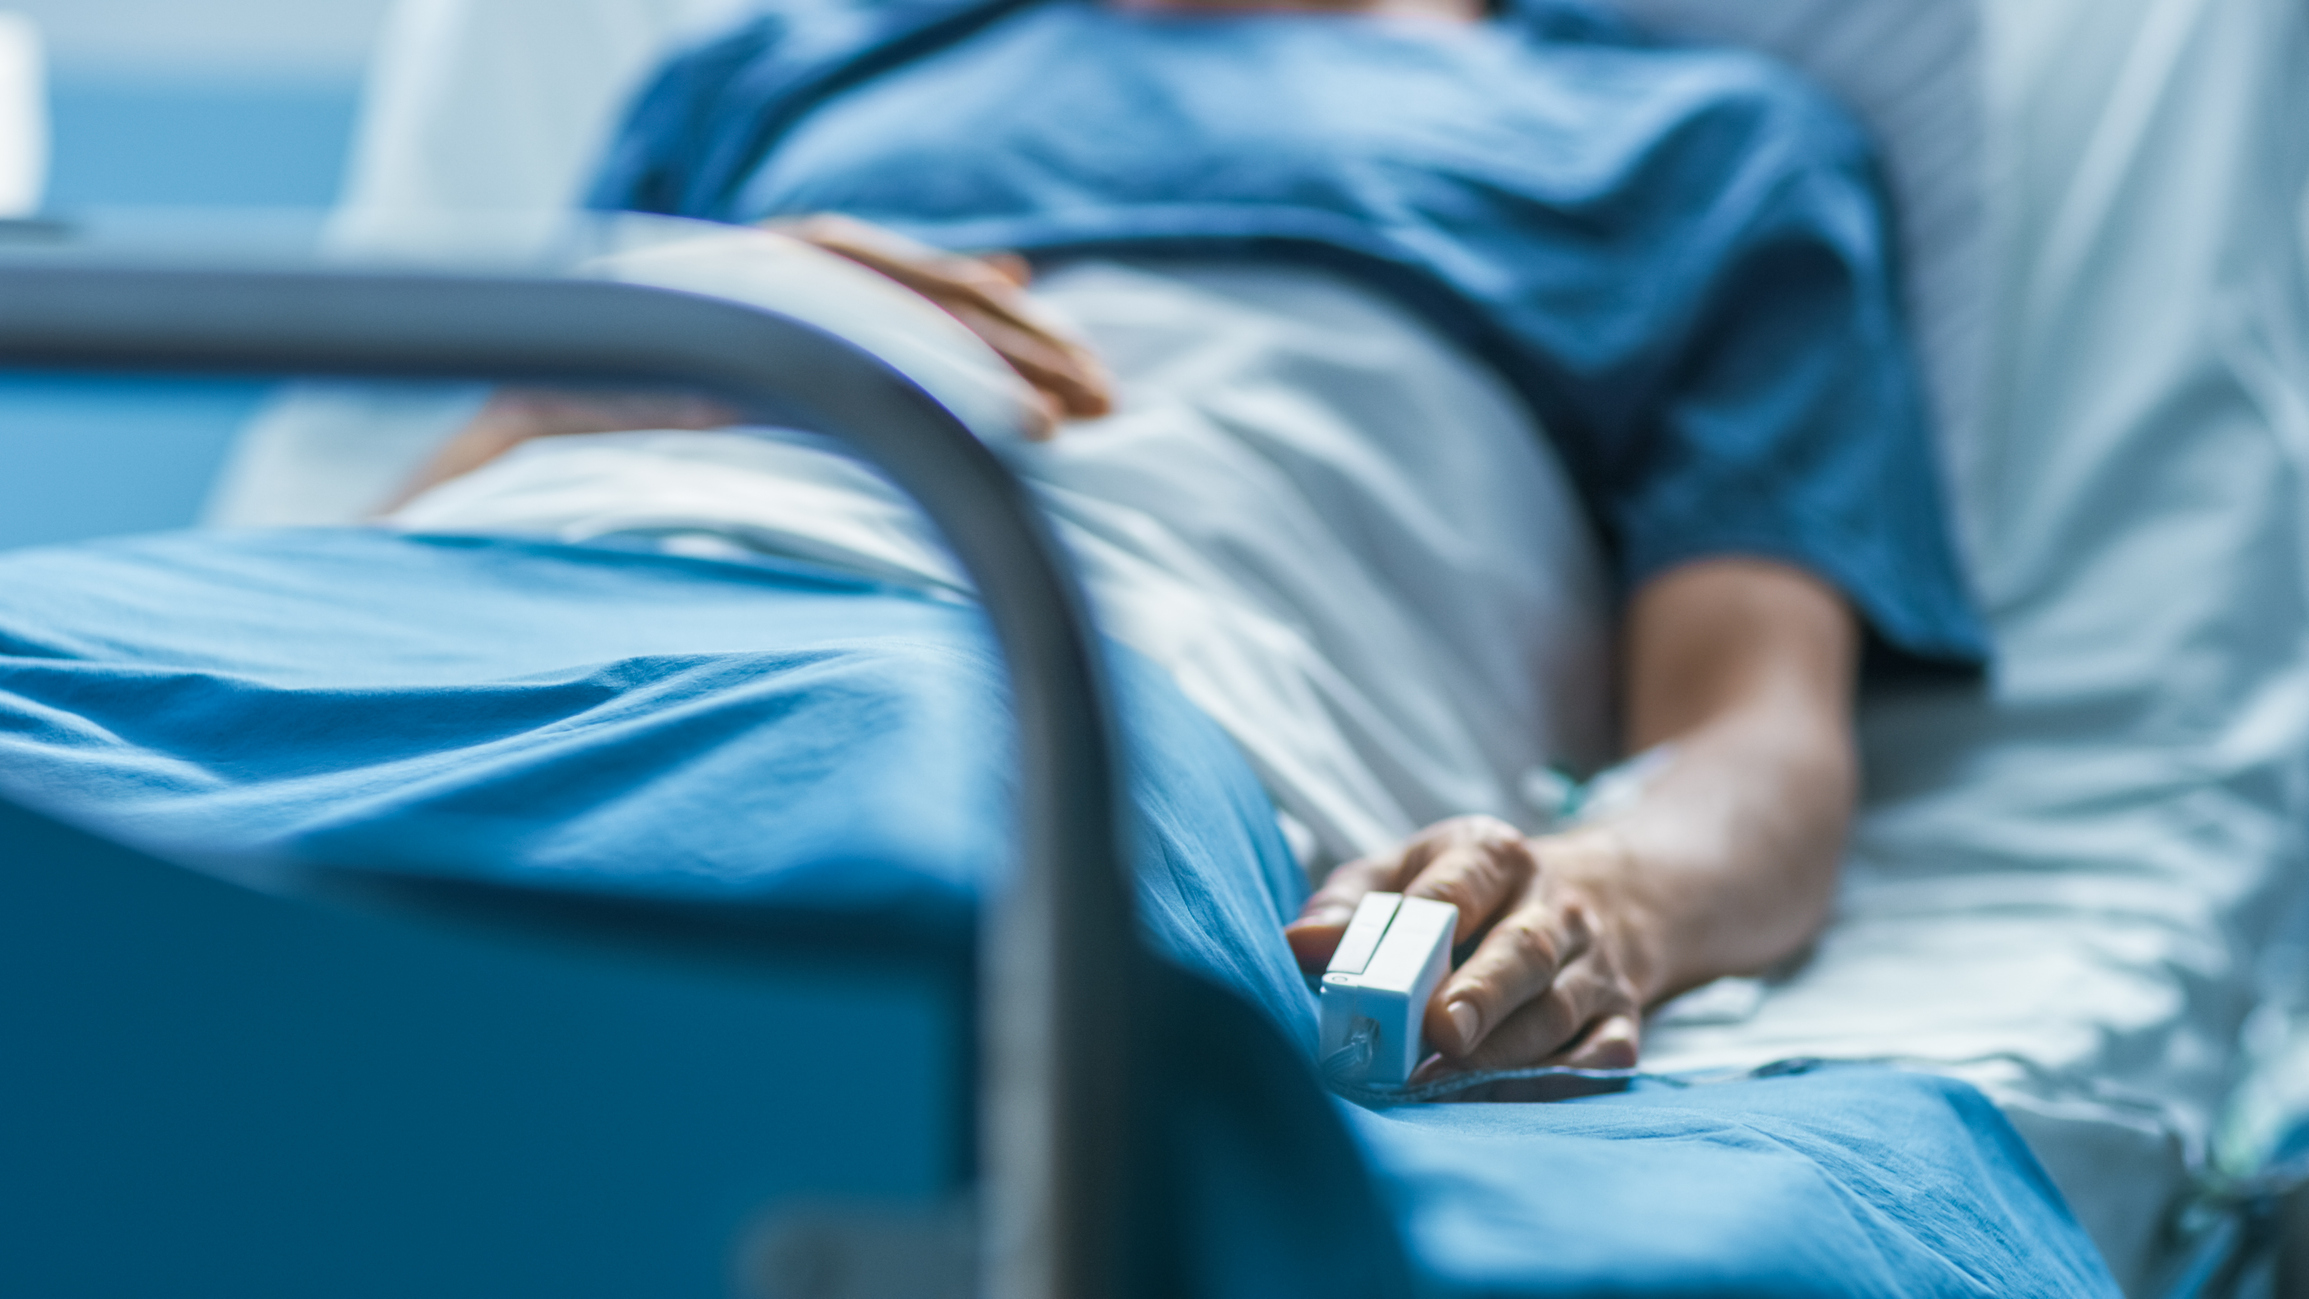 Person laying in hospital bed